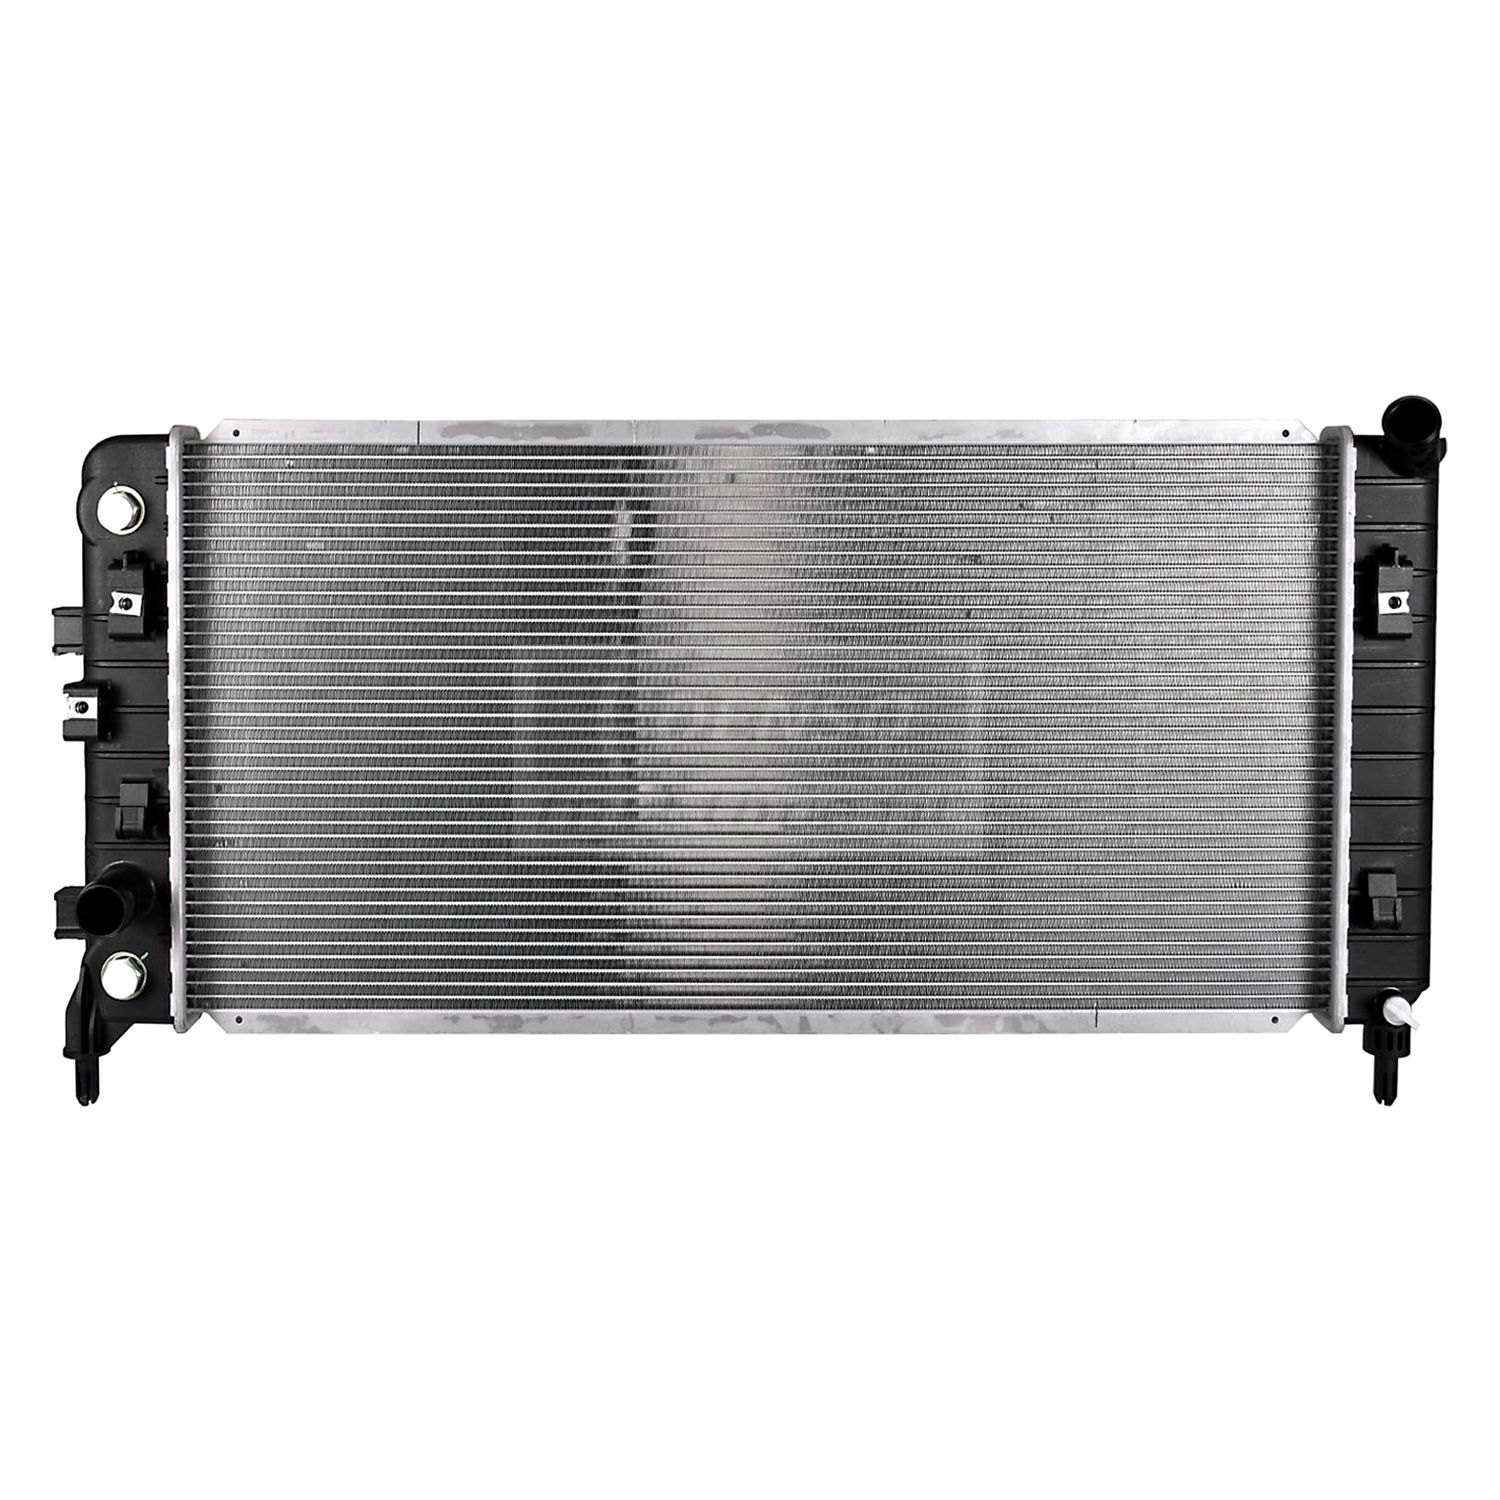 Denso chevy impala engine coolant radiator